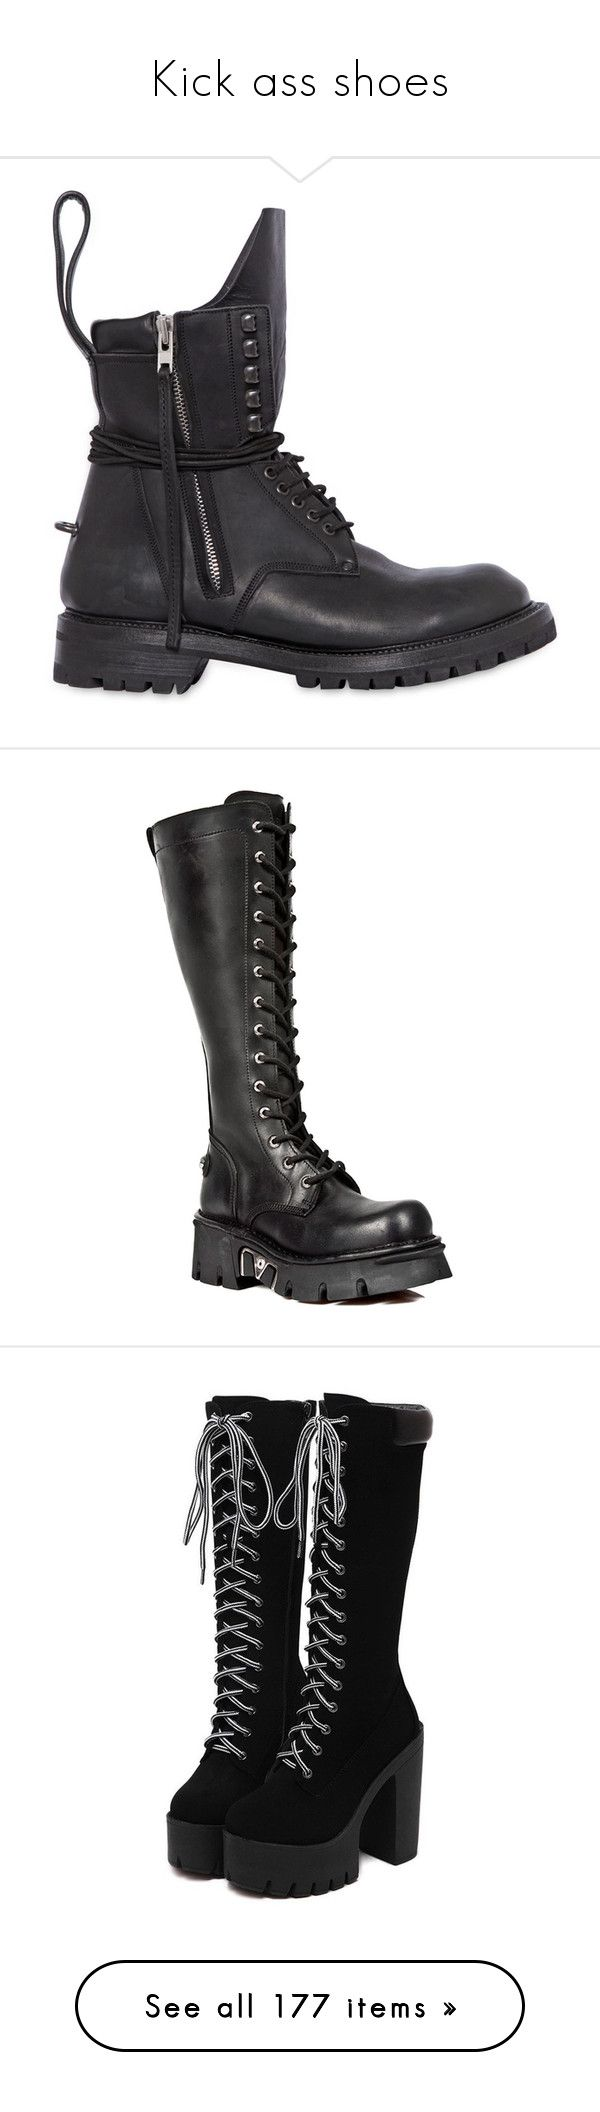 """""""Kick ass shoes"""" by plague-doc ❤ liked on Polyvore featuring men's fashion, men's shoes, men's boots, shoes, men, boots, footwear, black, mens side zip boots and mens army boots"""